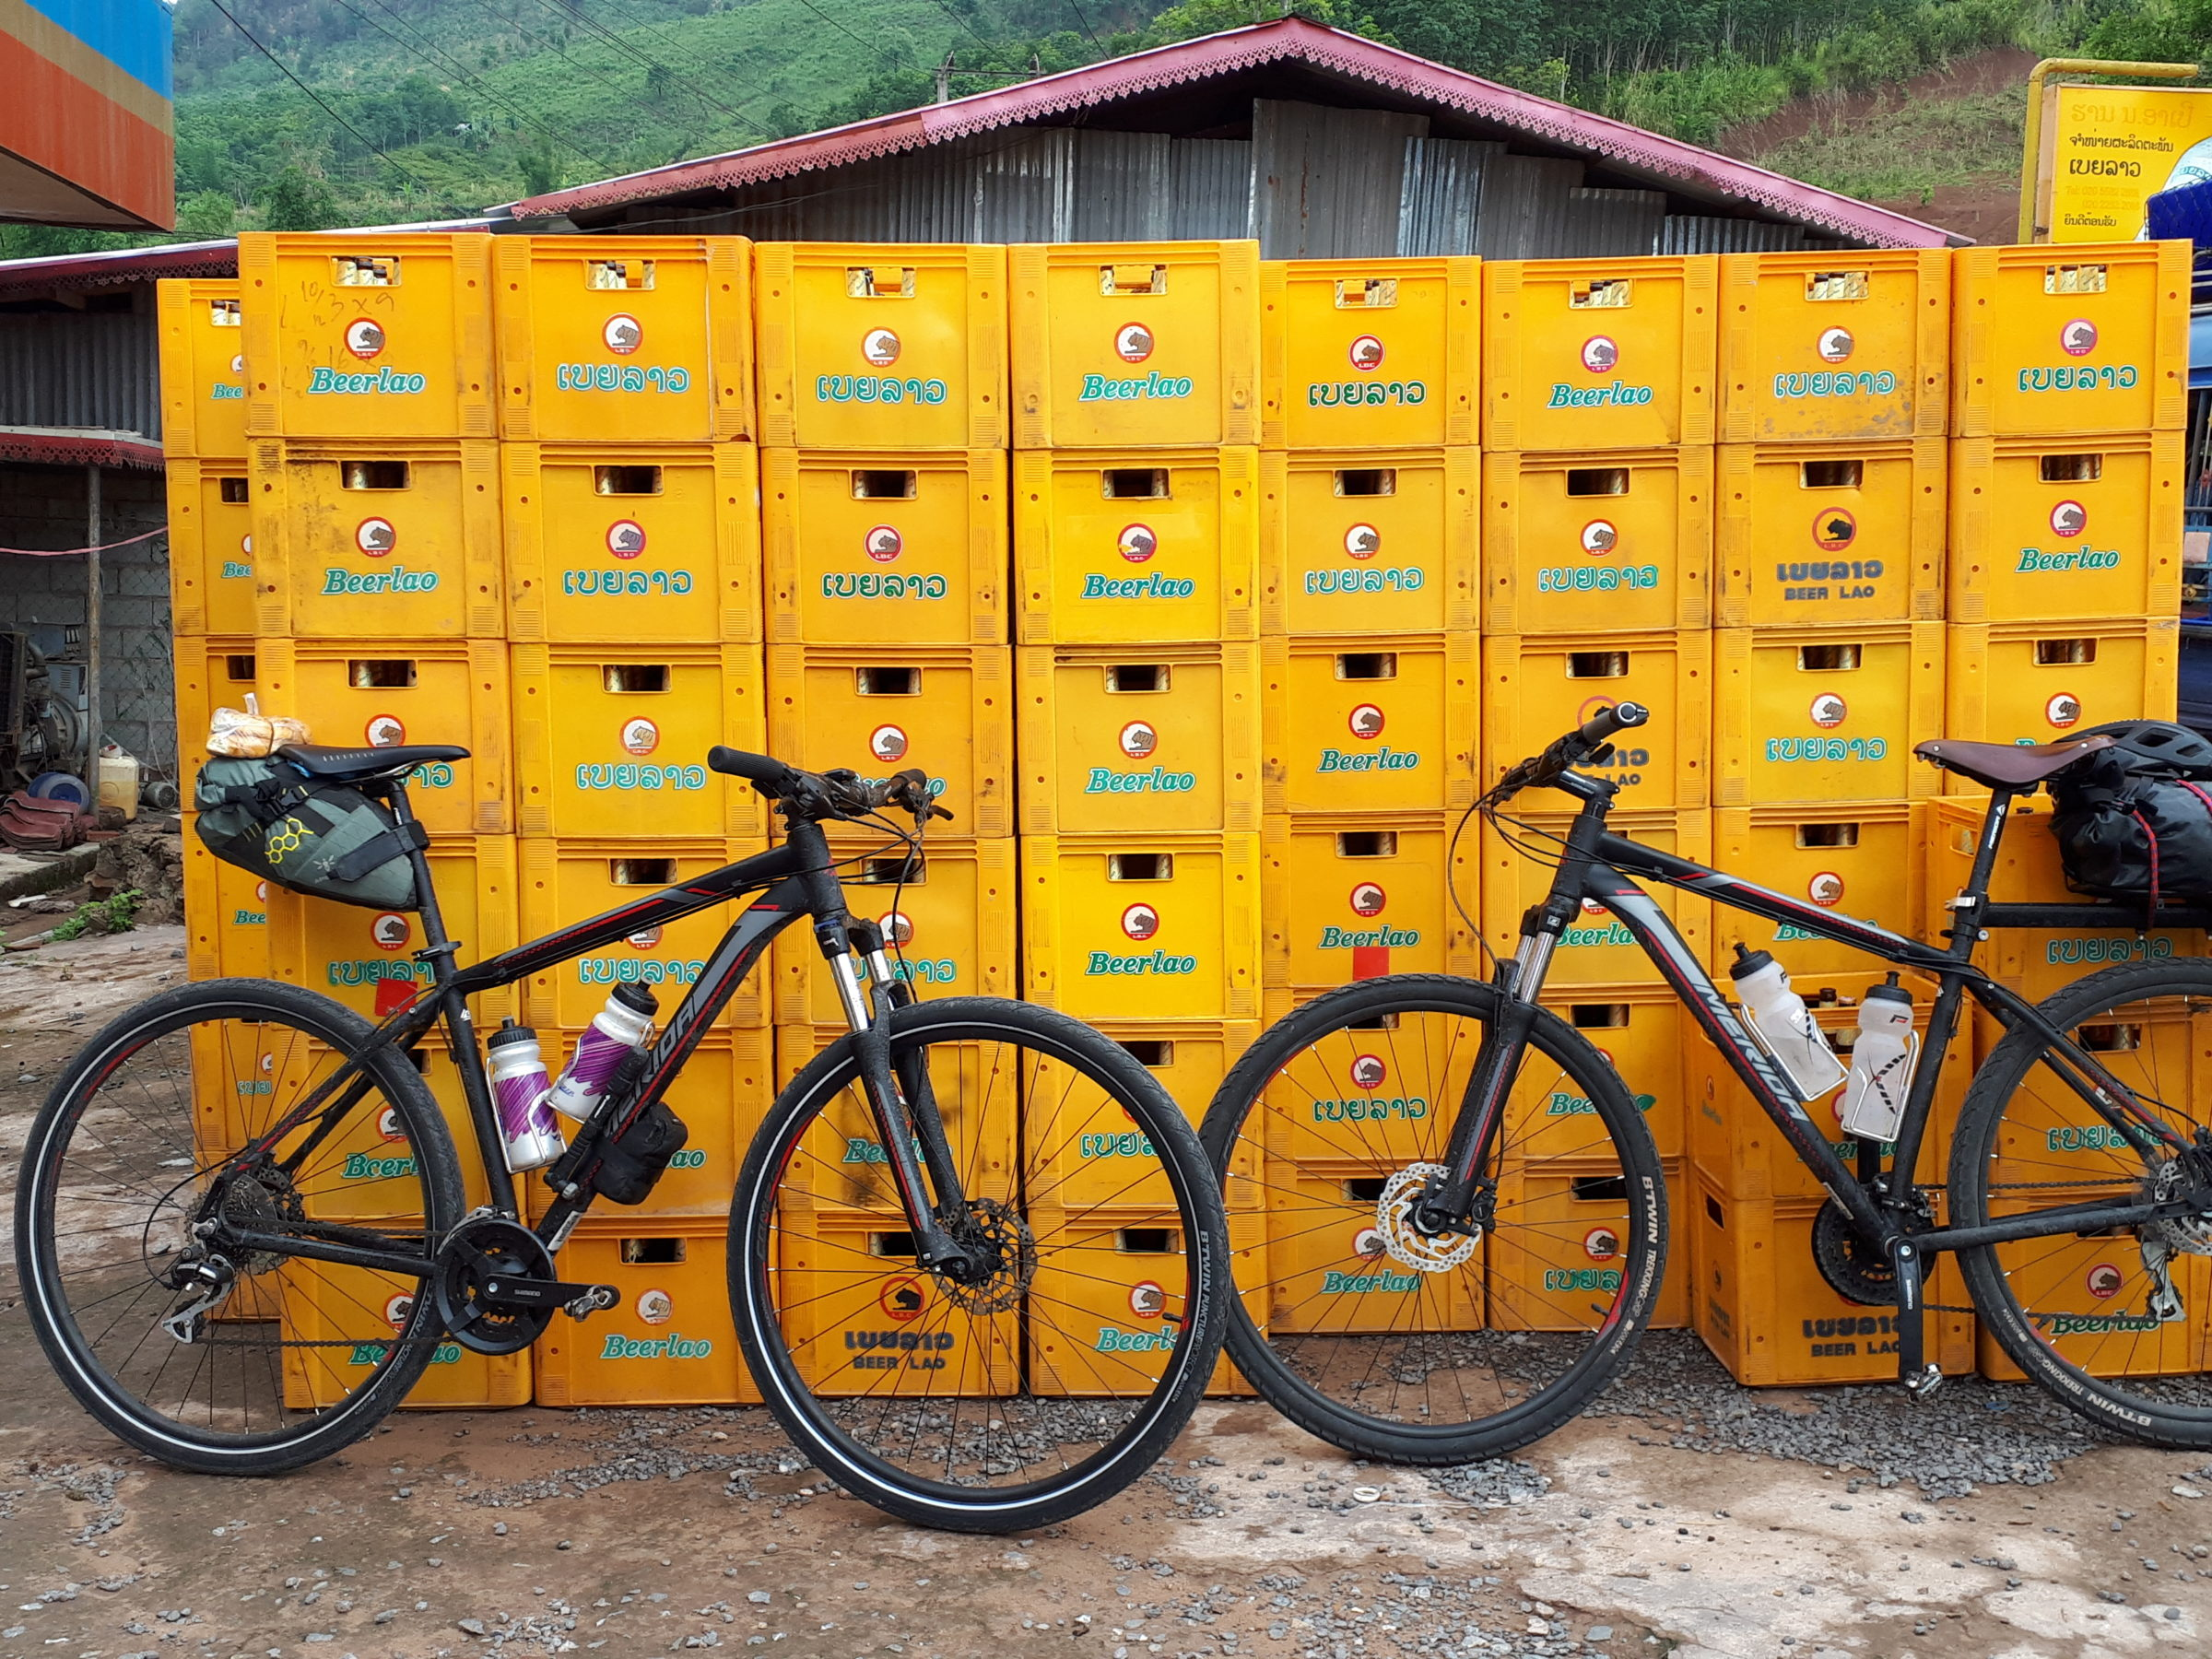 New mountain bikes Biking Laos in front of Beerlao crates